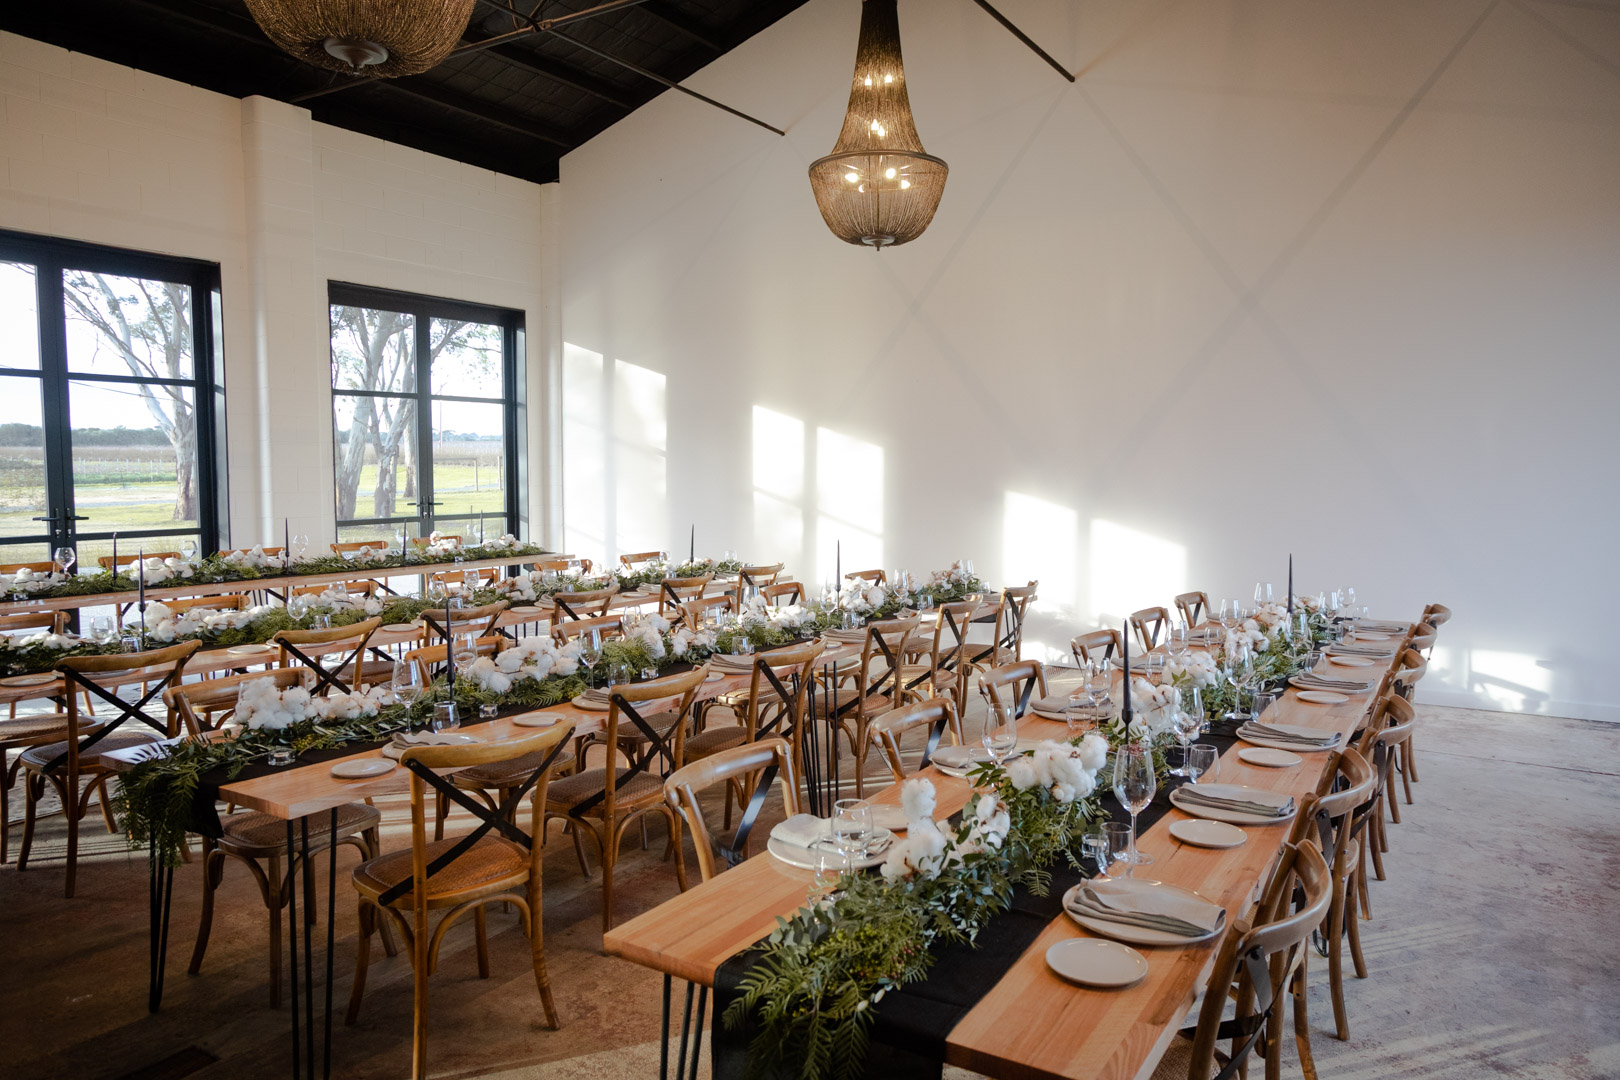 Ortus Wines, a flexible dry hire warehouse-style venue in the countryside of Willunga surrounded by gum trees and vines